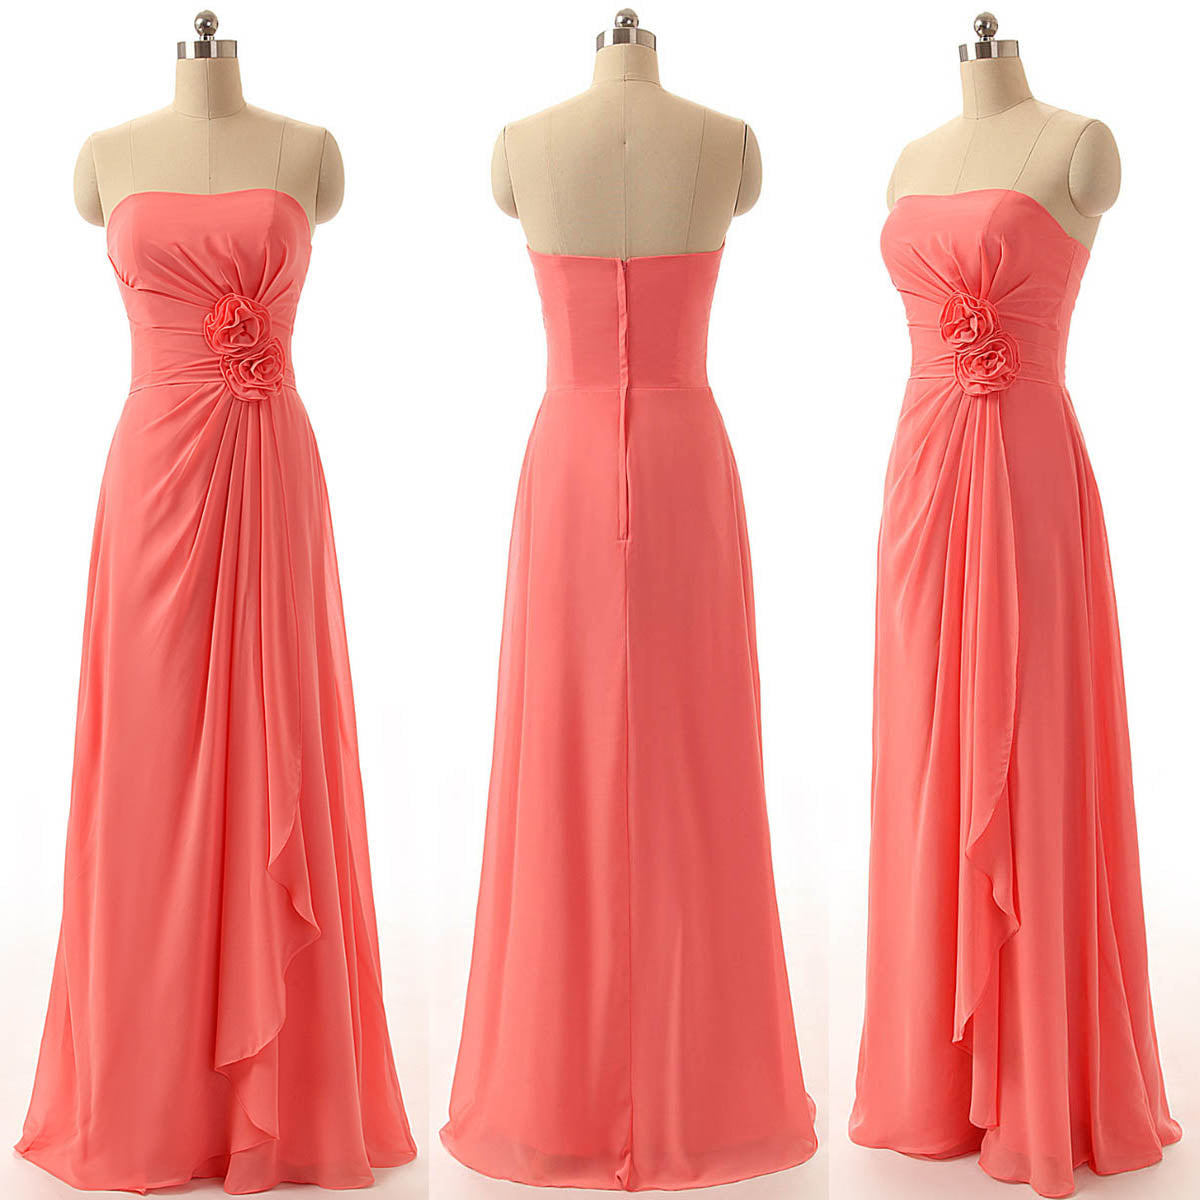 f0285e3d498 Coral Red Strapless Backless Chiffon Prom Dresses Best Bridesmaid Dresses  With Flower